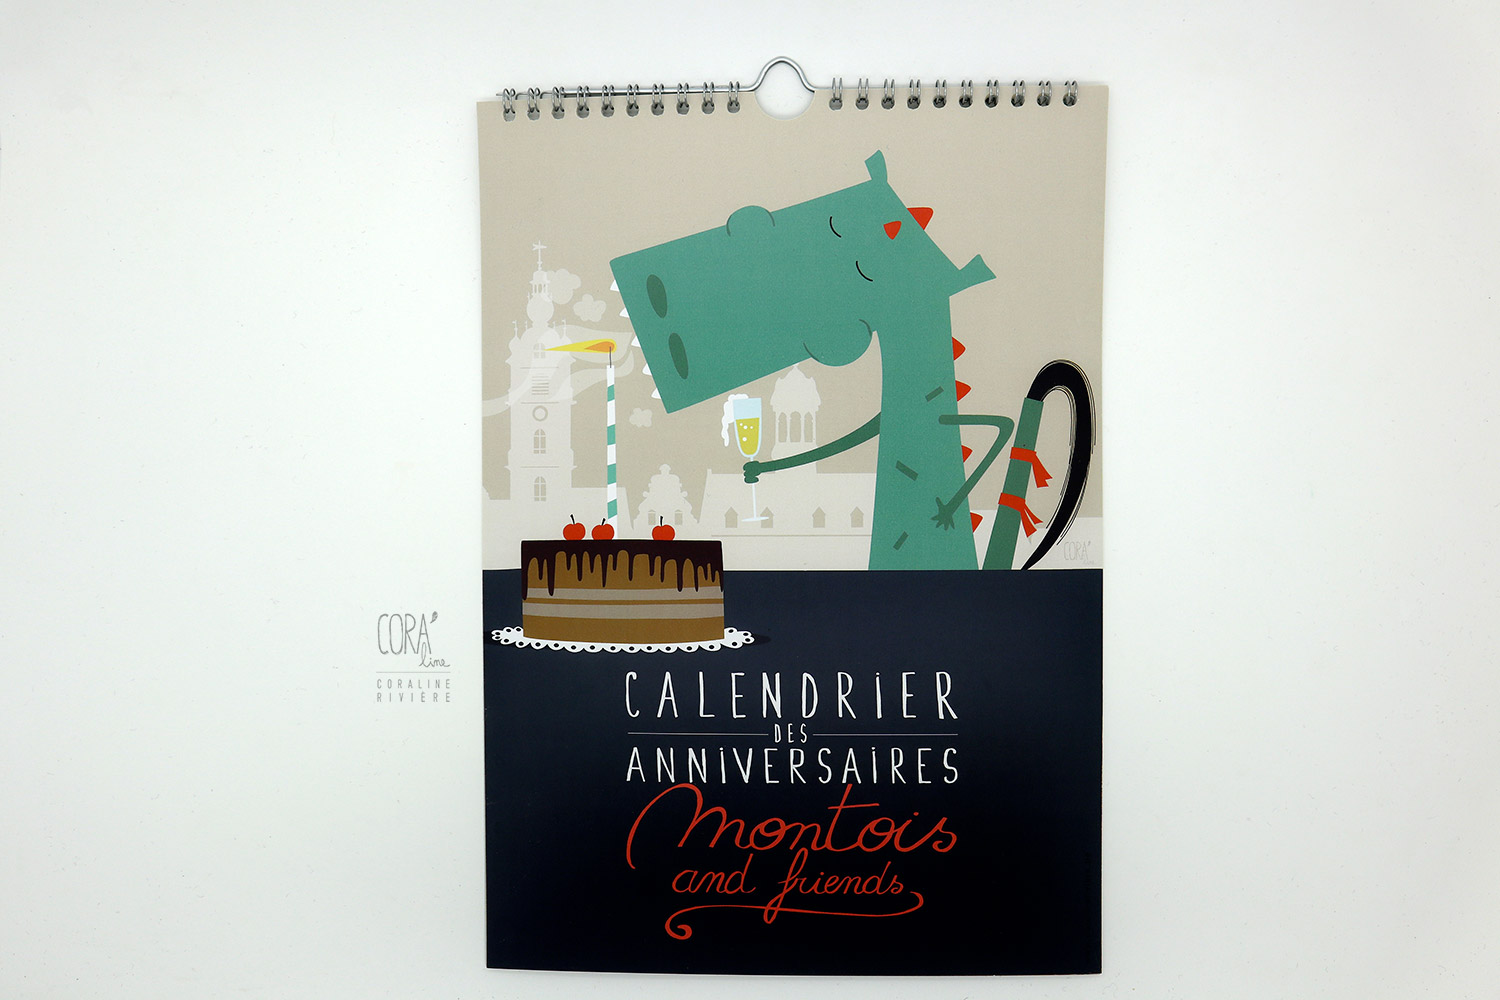 calendrier anniversaires montois and friends illustrations coraline riviere